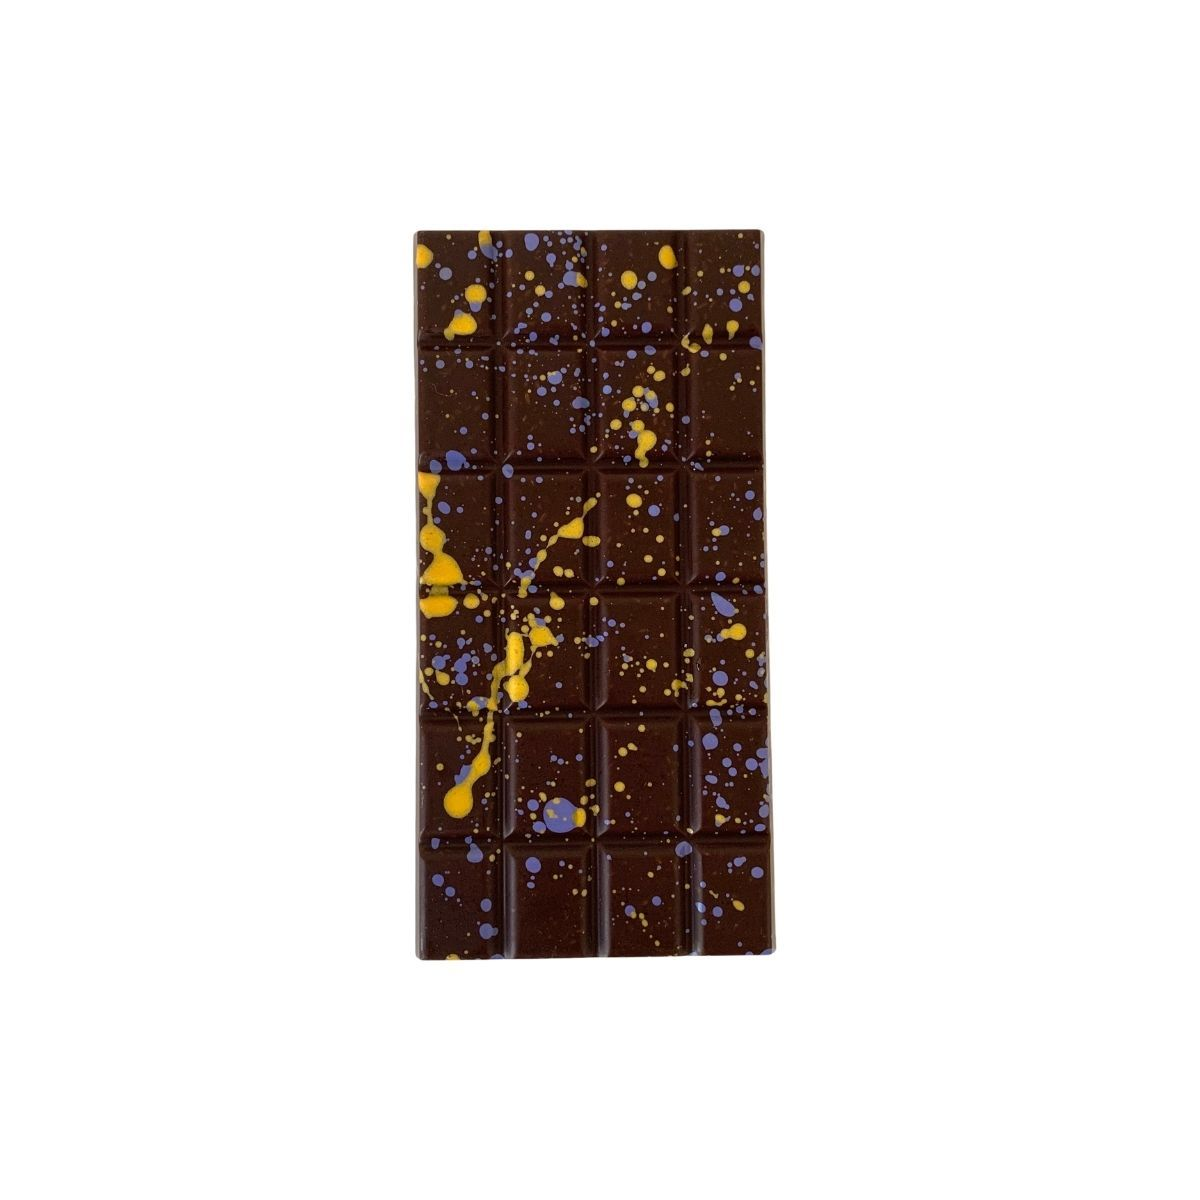 Candied Lemon Ginger & Fennel Vegan Dark Chocolate Bar